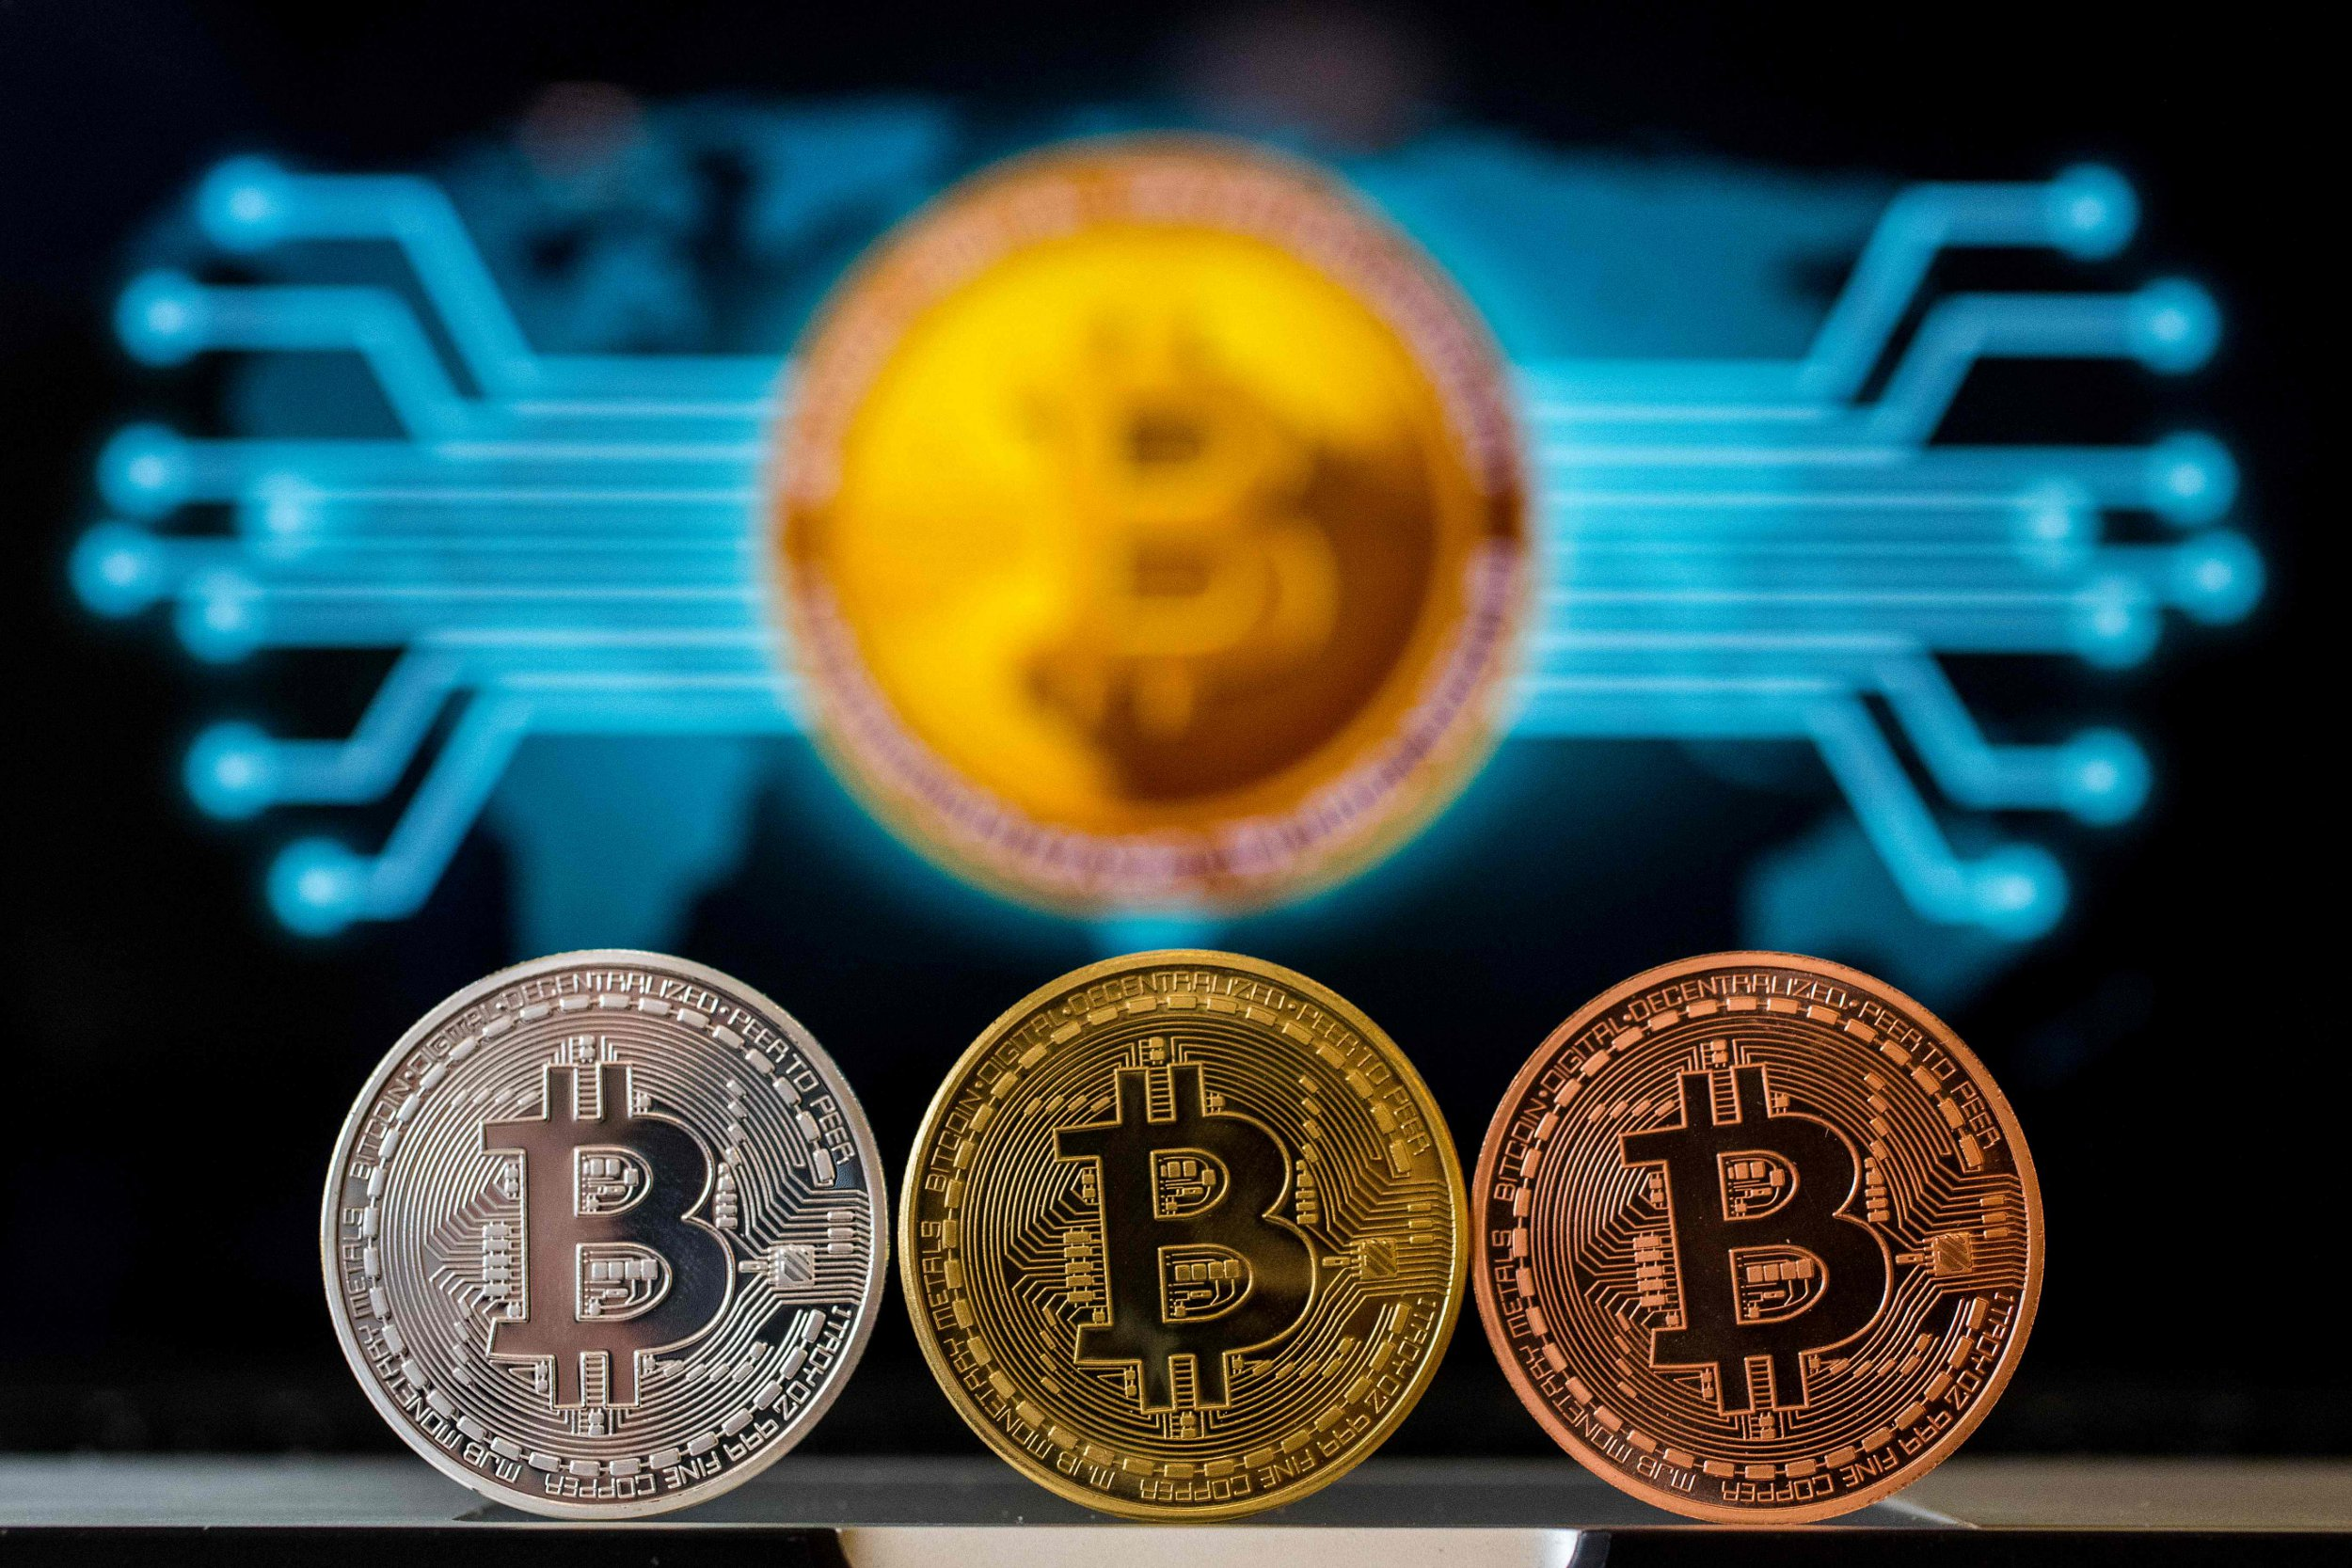 Bitcoin price to 'double' in 2018 cryptocurrency boom as Ethereum, Ripple and Litecoin surge, analysts predict